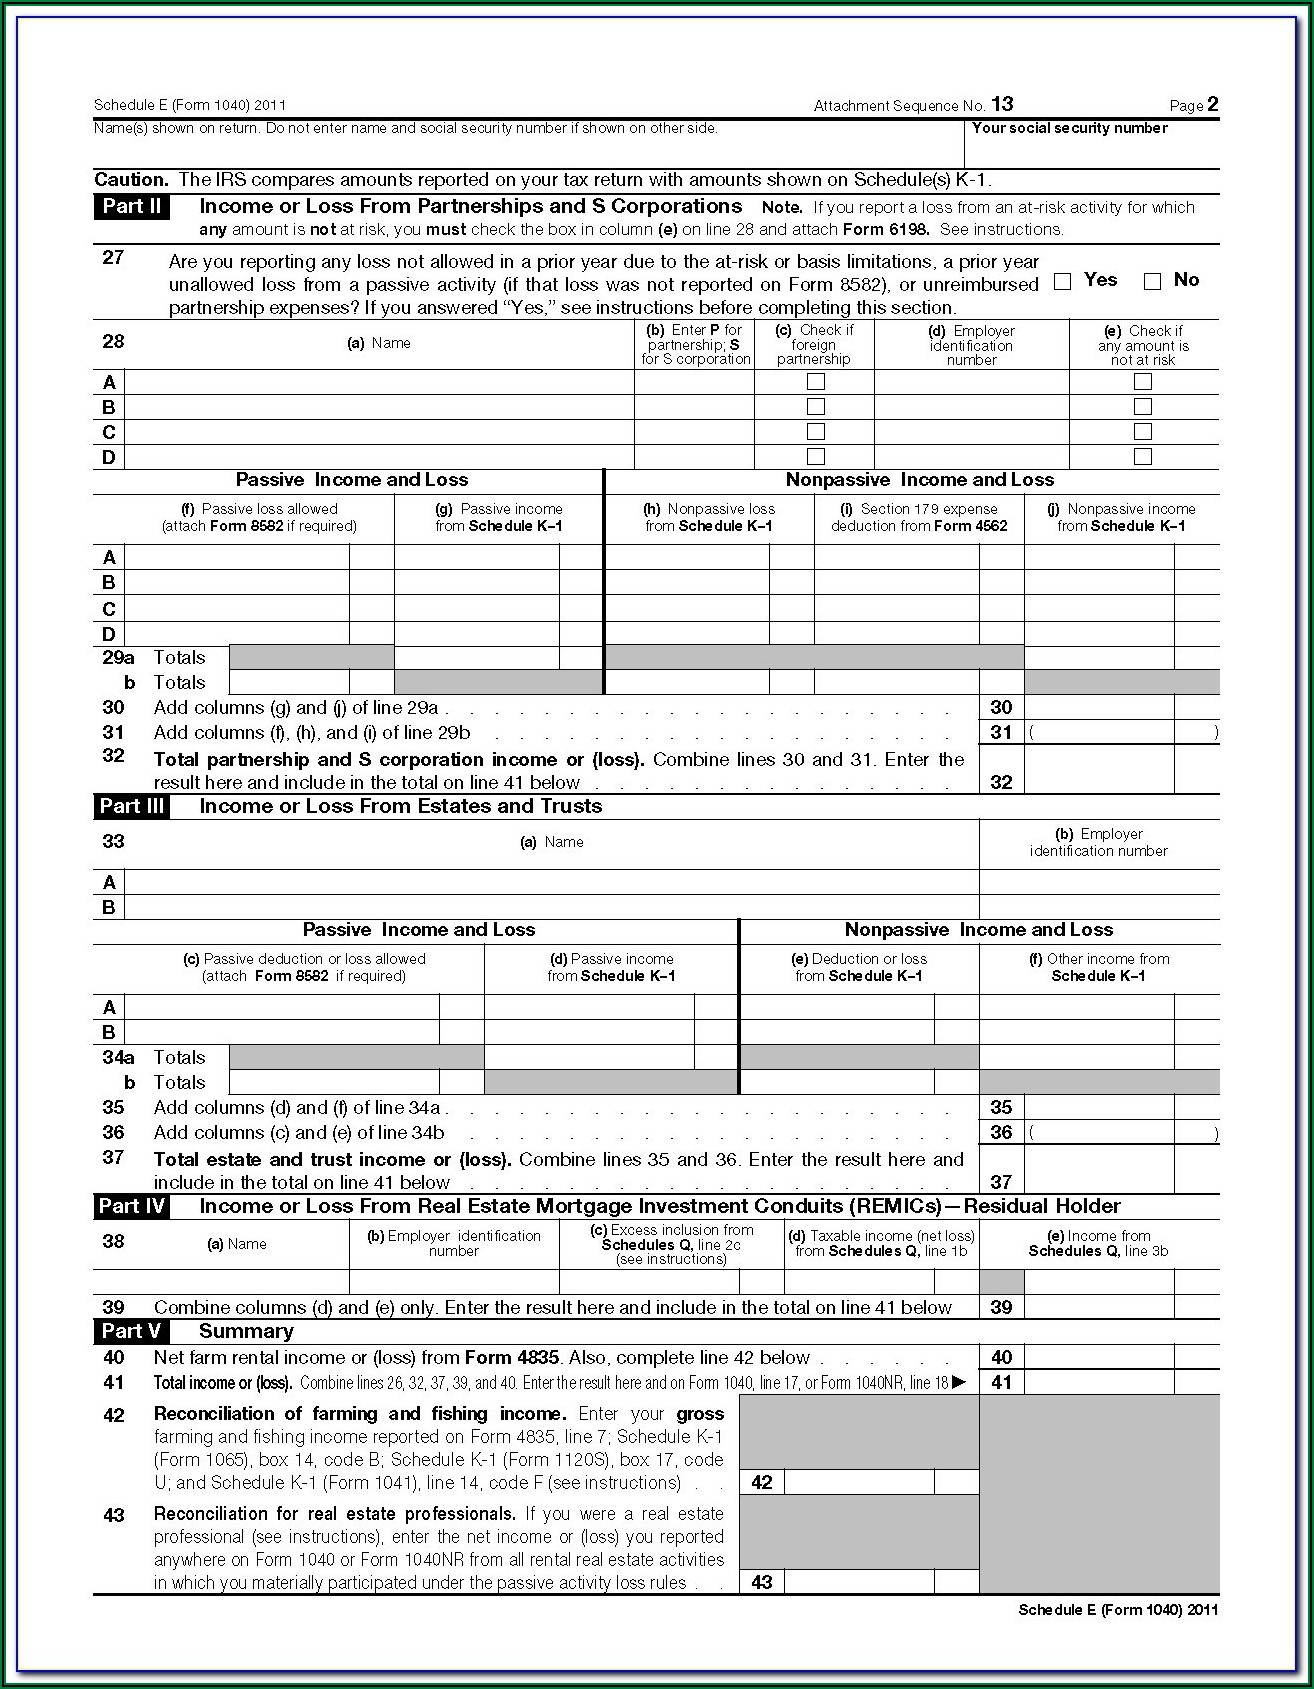 Download Federal Tax Form 1040a